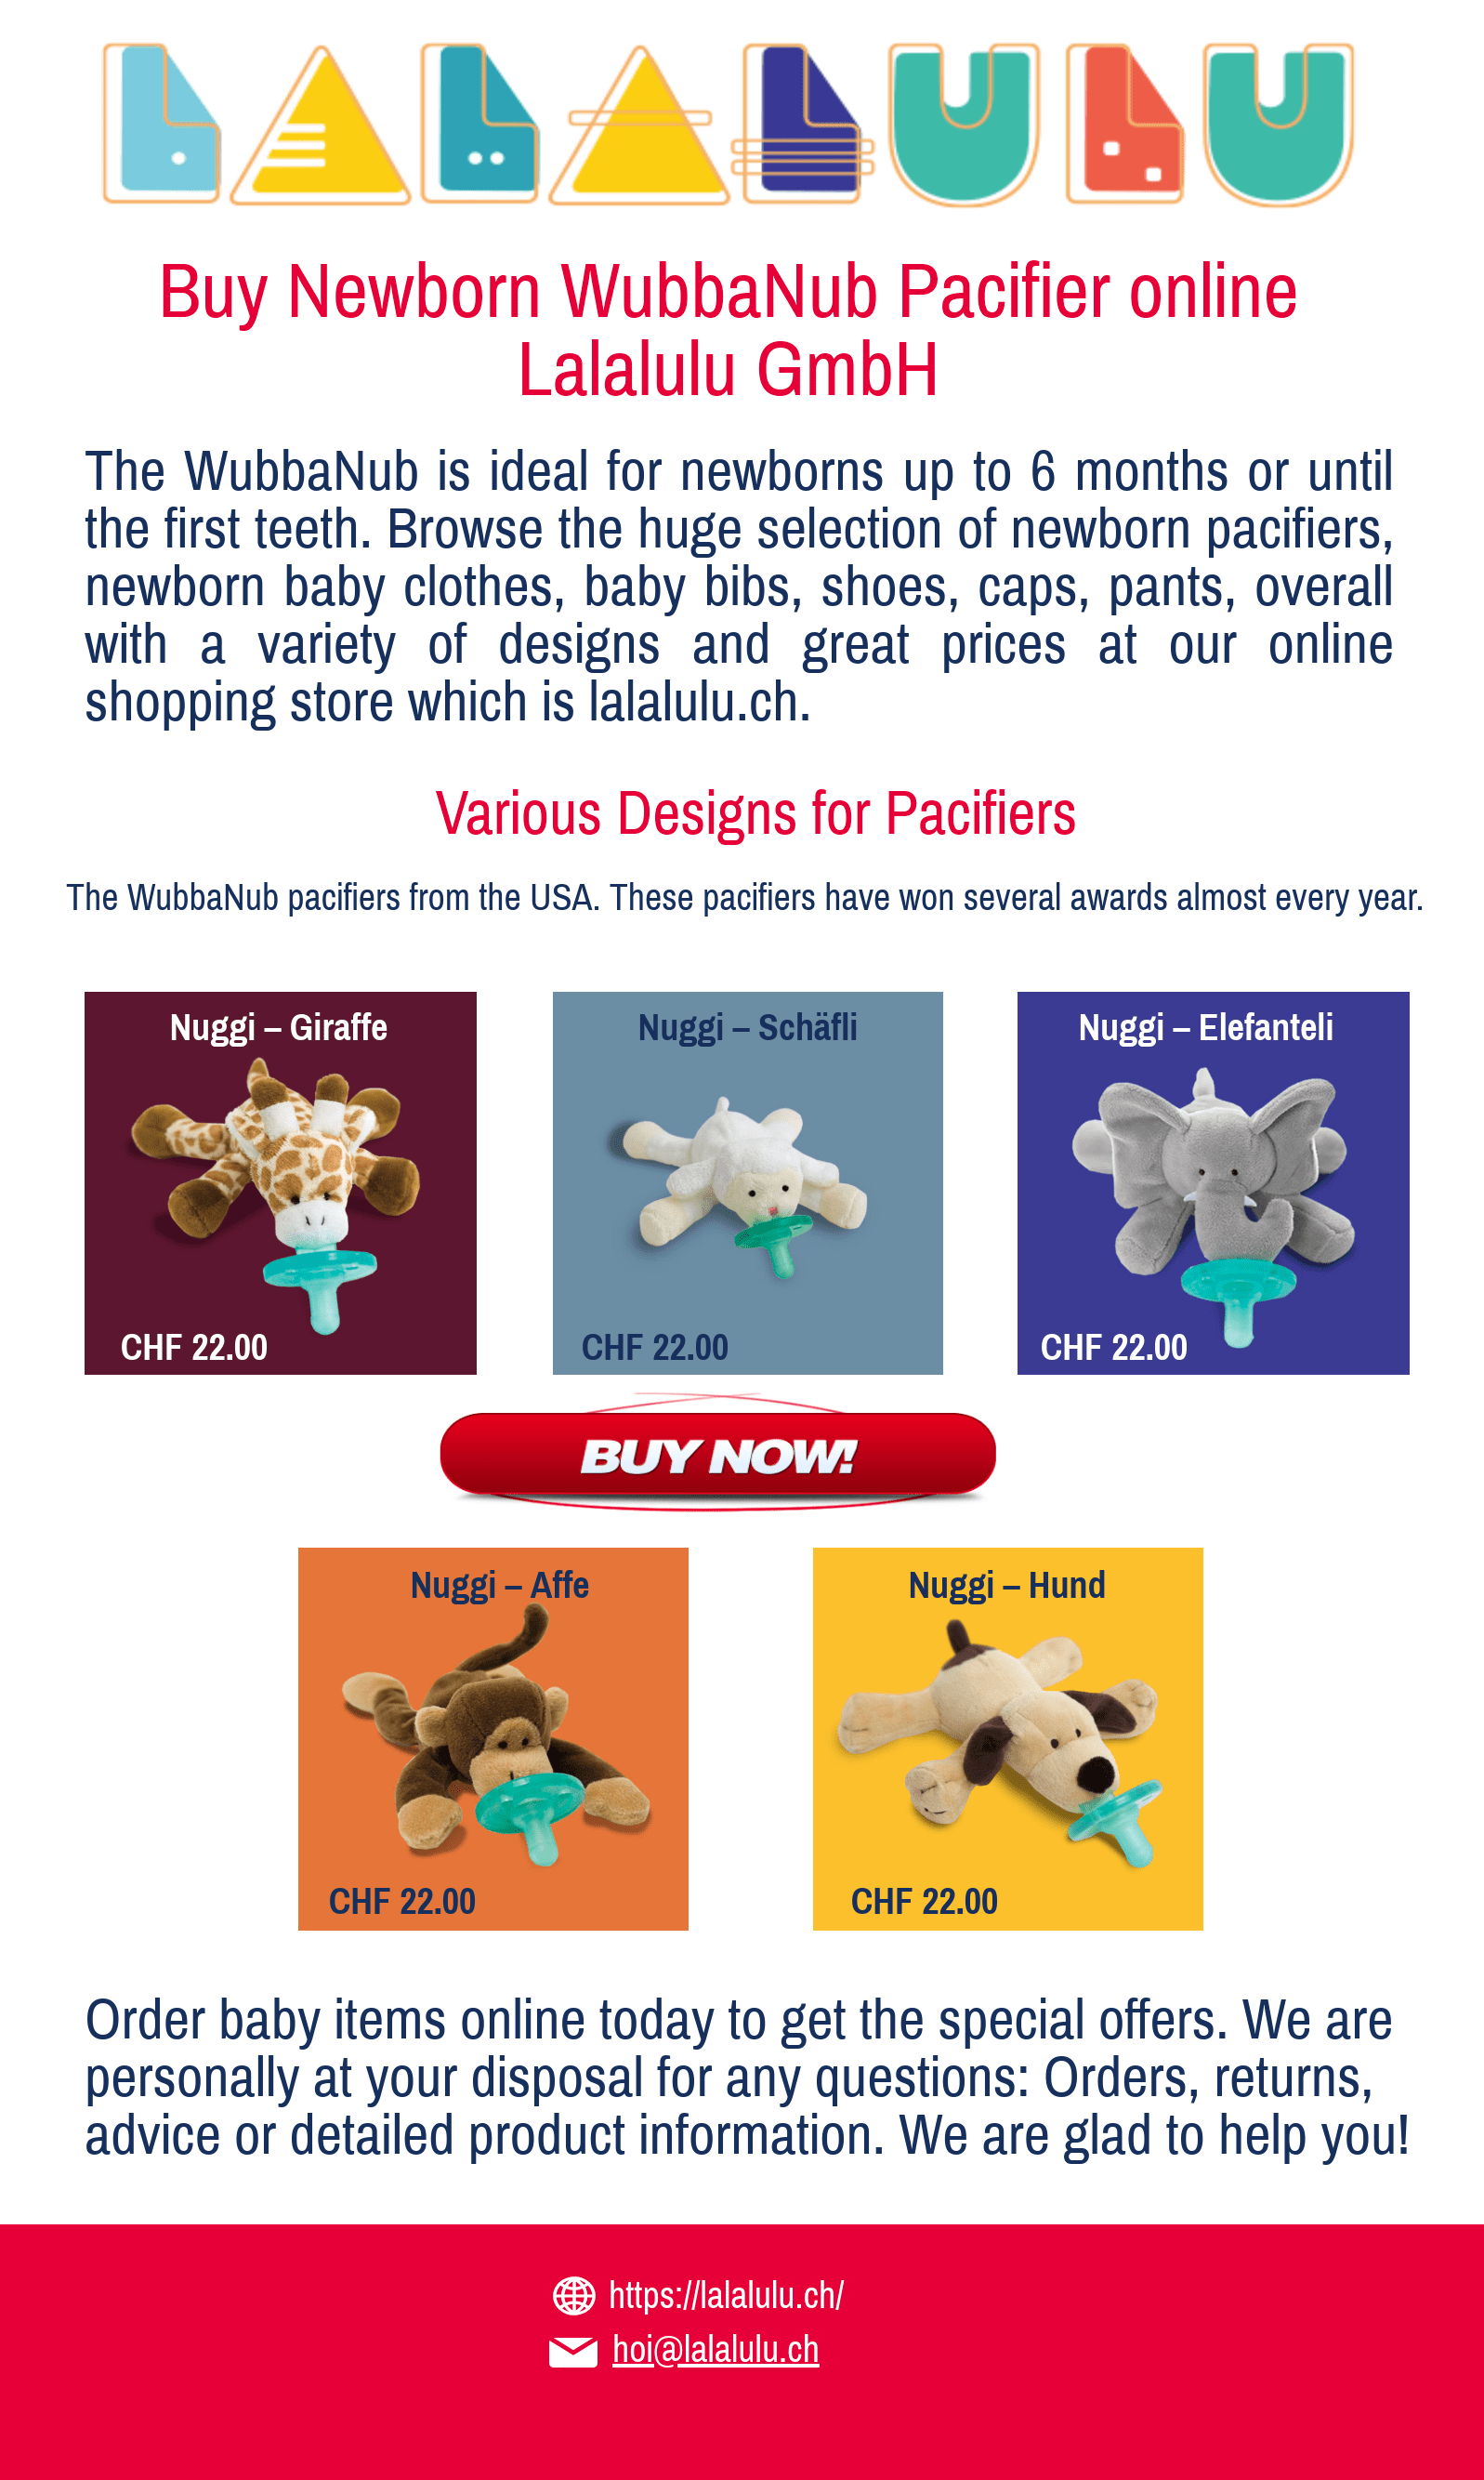 Newborn Babies Online Shopping Buy Wubbanub Pacifier Switzerland Online Lalalulu Gmbh By